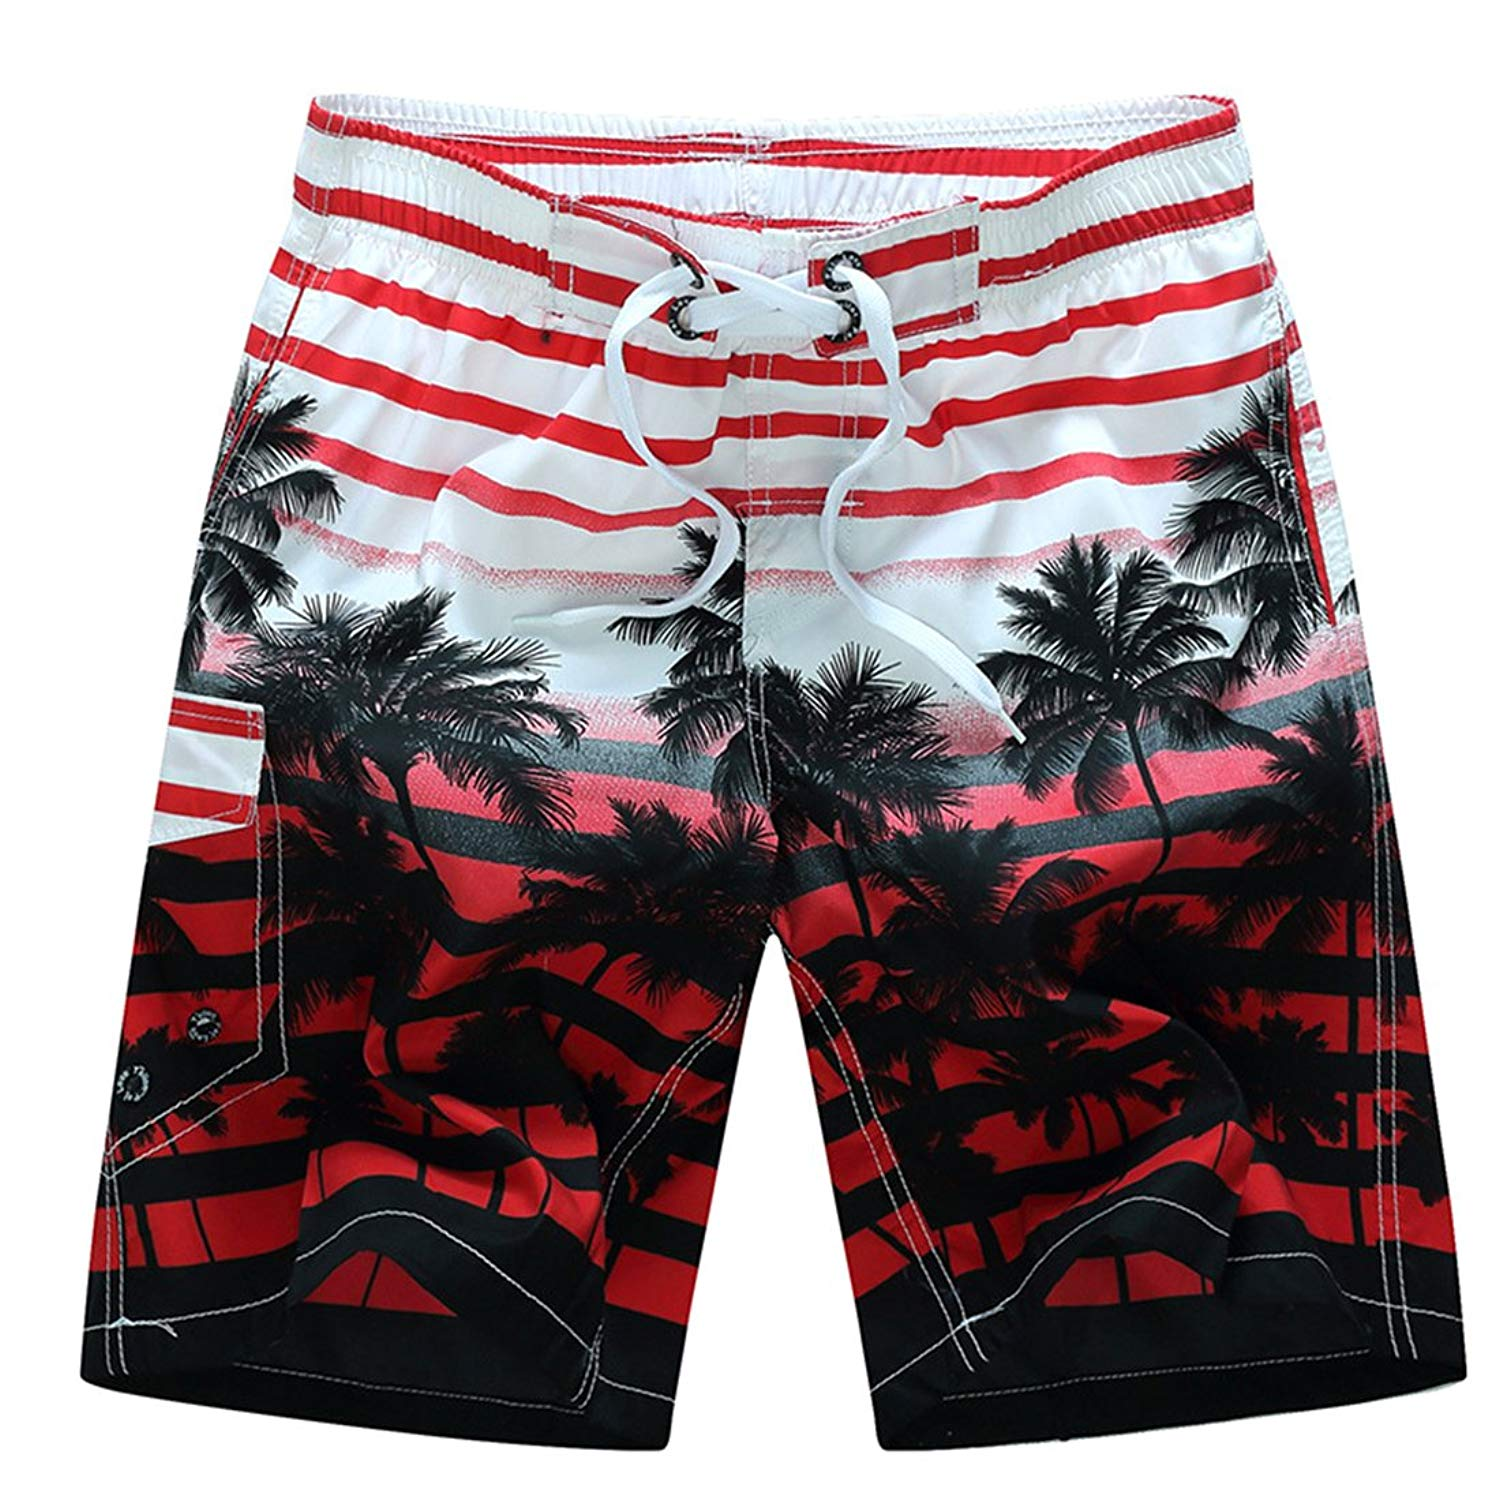 341596c0262e4 Get Quotations · Simcat Summer Shorts,Men Quick Dry Swim Trunks Cargo Water  Shorts With Mesh Lining Casual